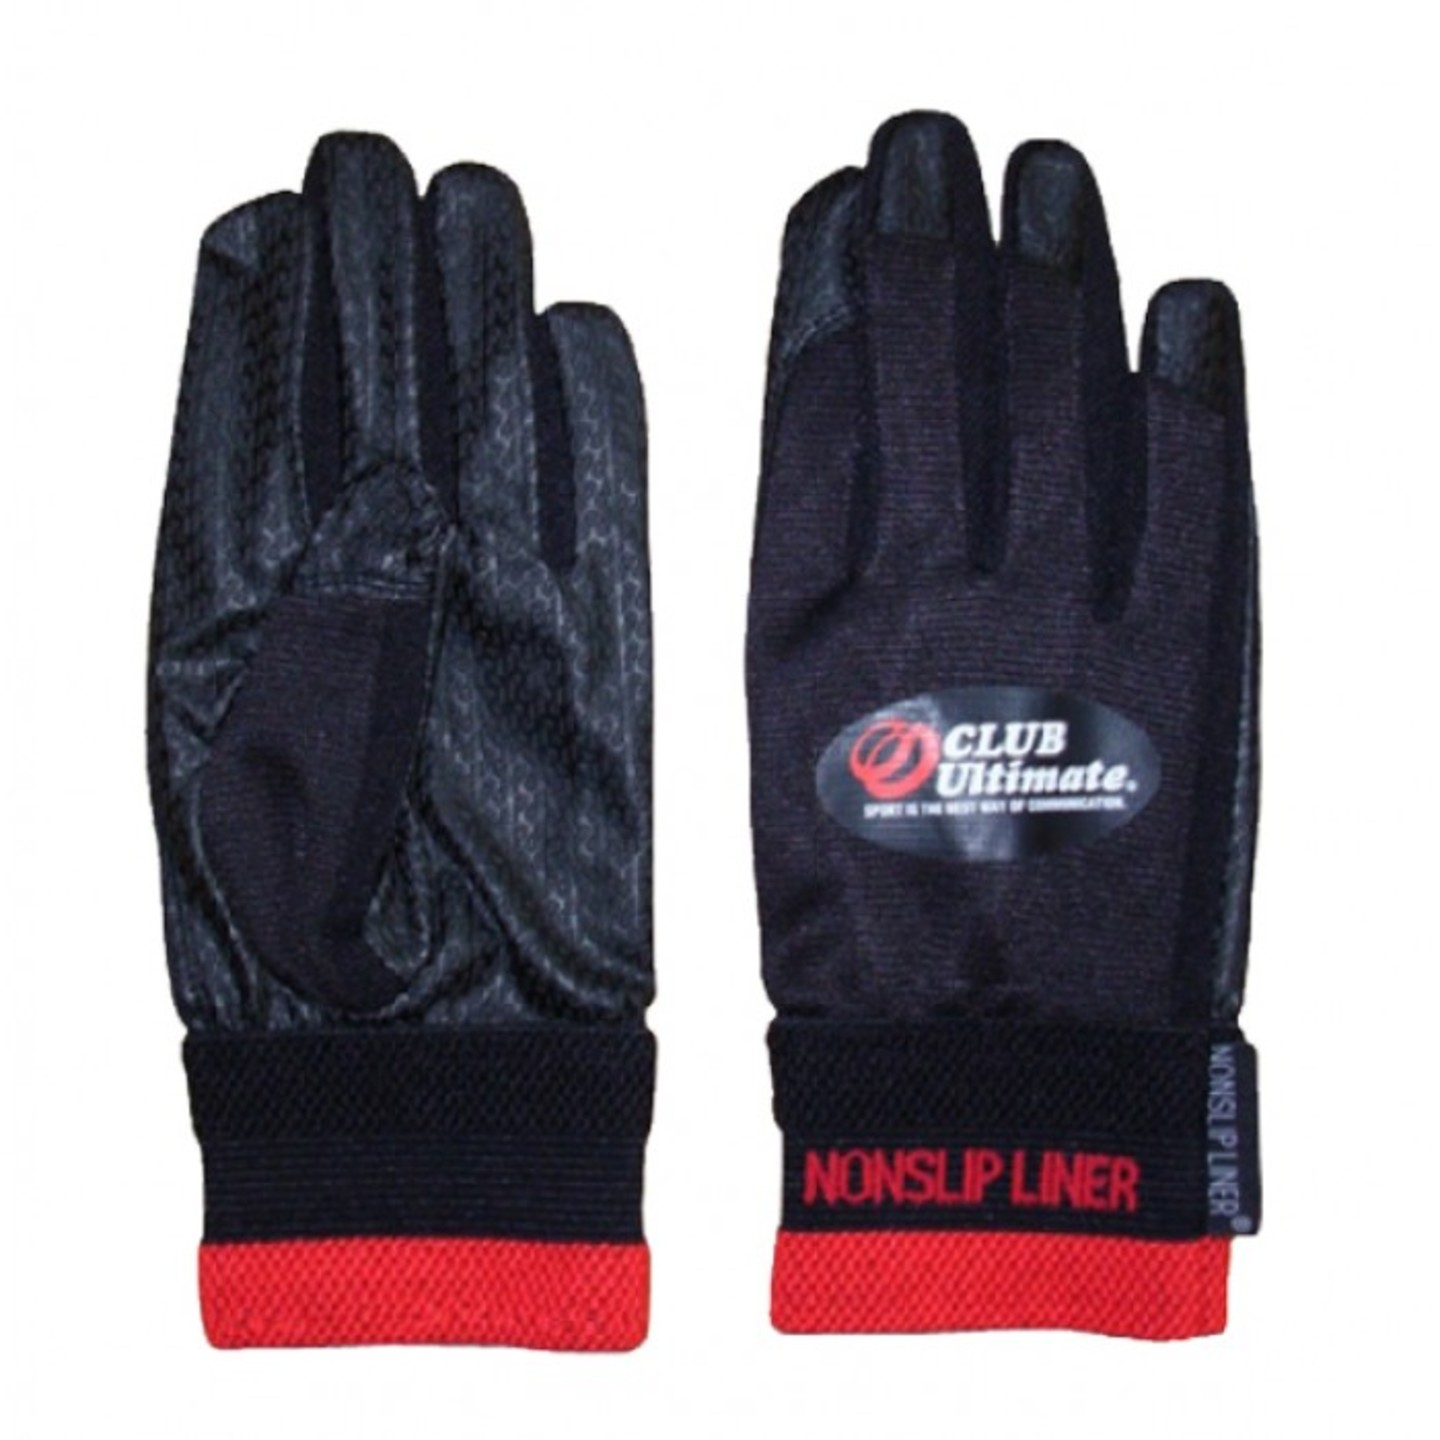 Club Jr Ultimate Gloves 1.0